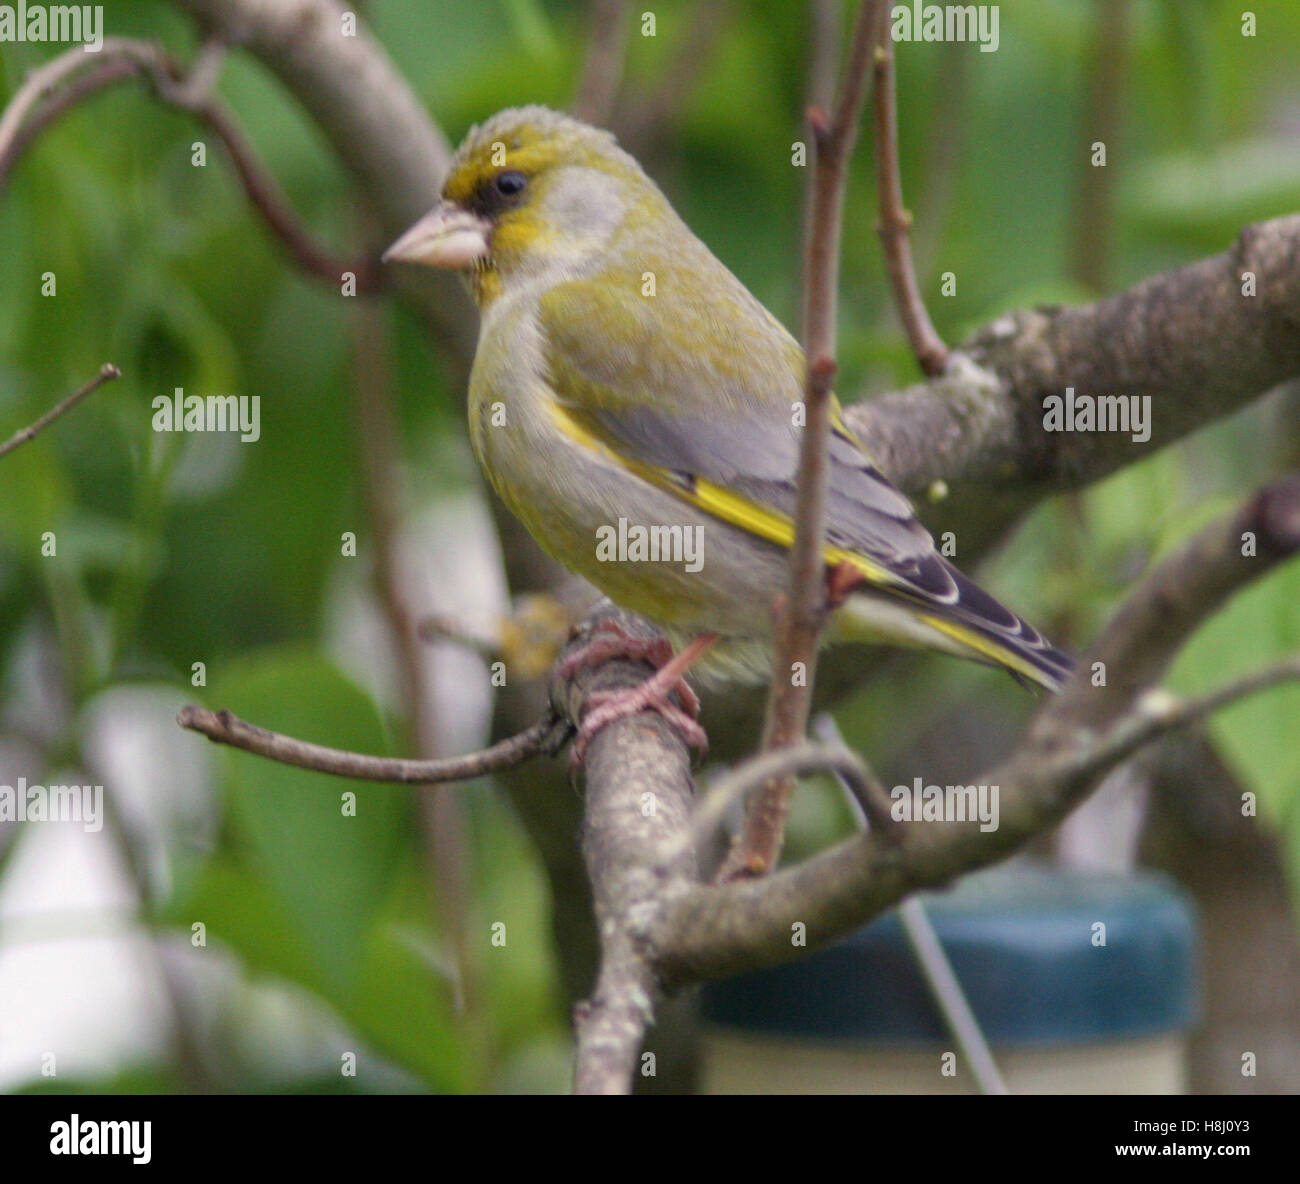 GREEN FINCHES at a branch - Stock Image